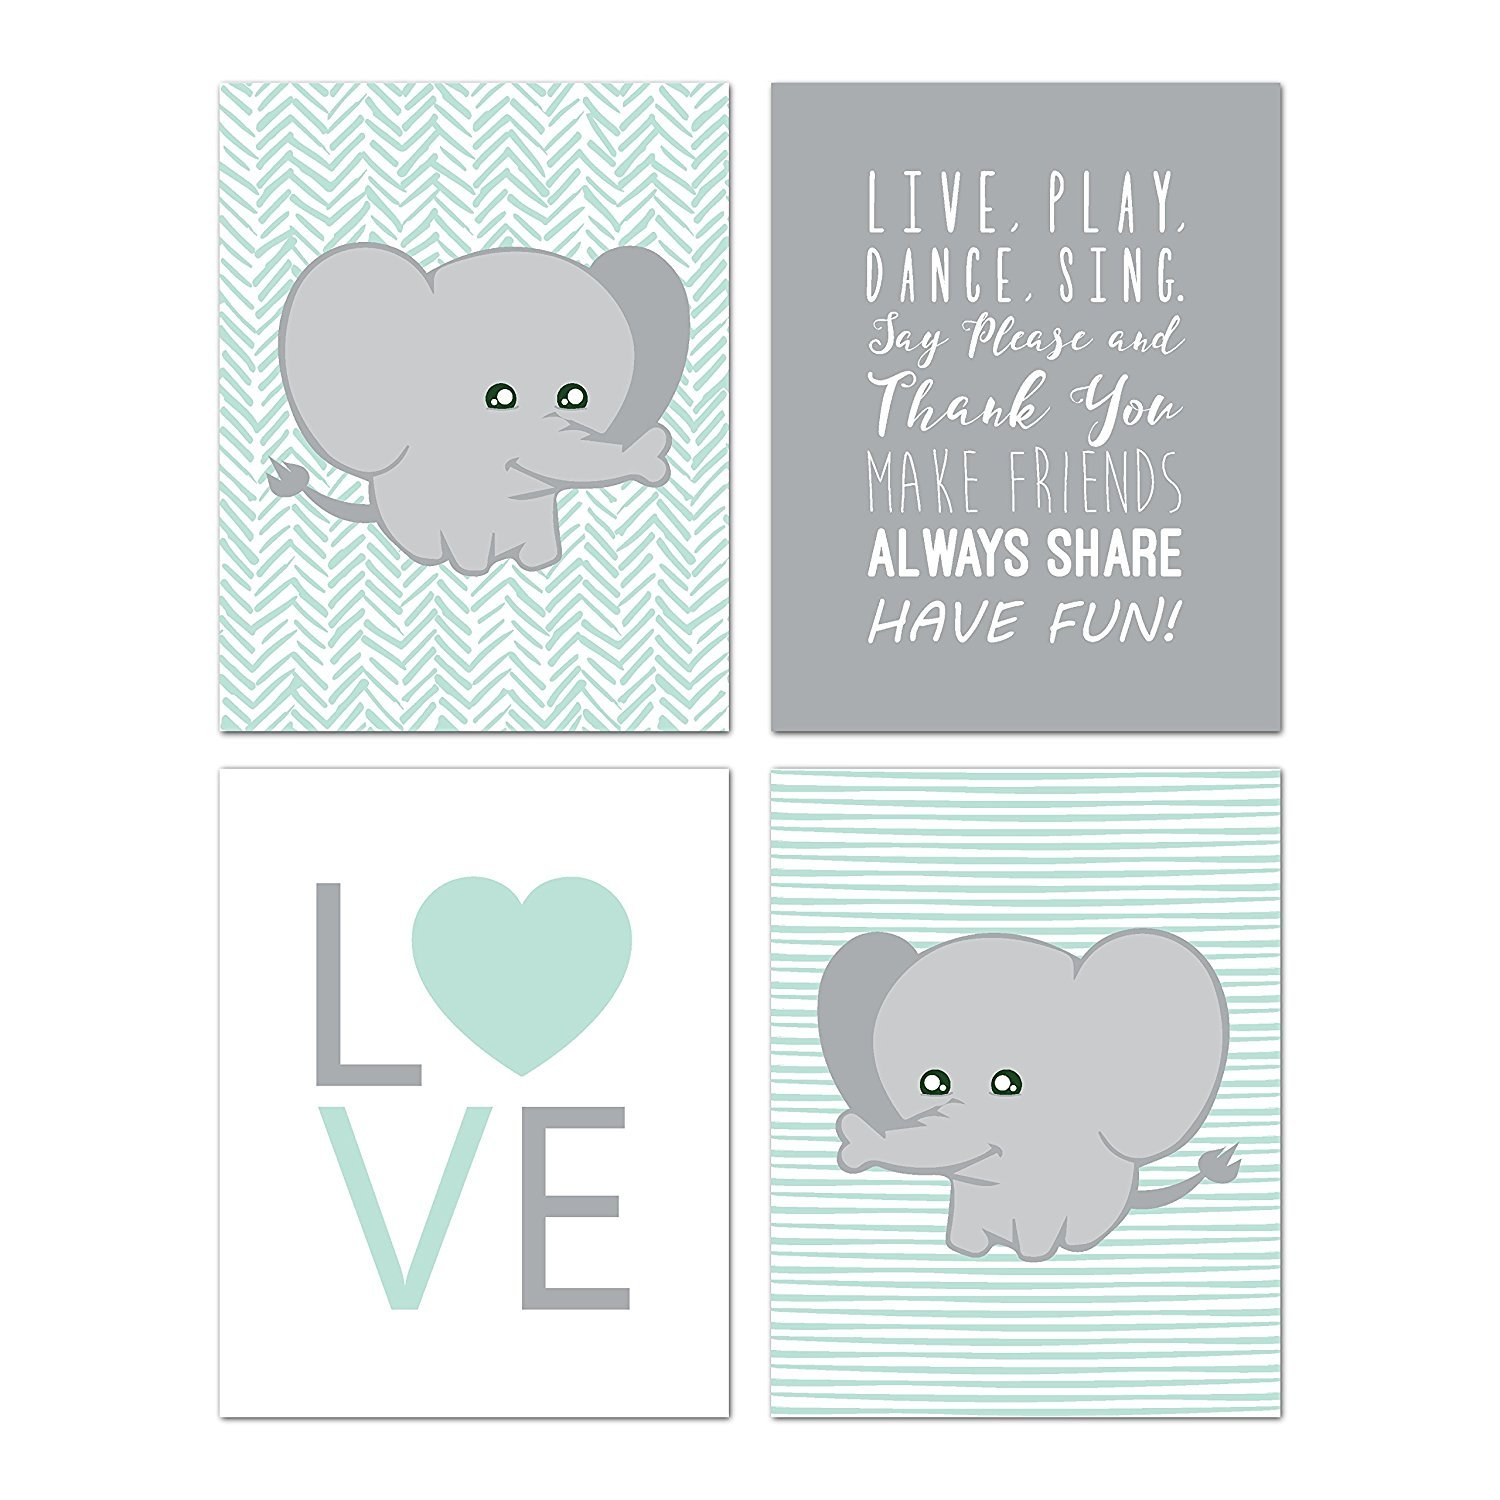 Elephant Nursery Decor, Wall Decor For Kids, Wall Art For Kids, Playroom Decor, Baby Decor, Baby Shower Gift, 08x10 Inch Print Children Inspire Design